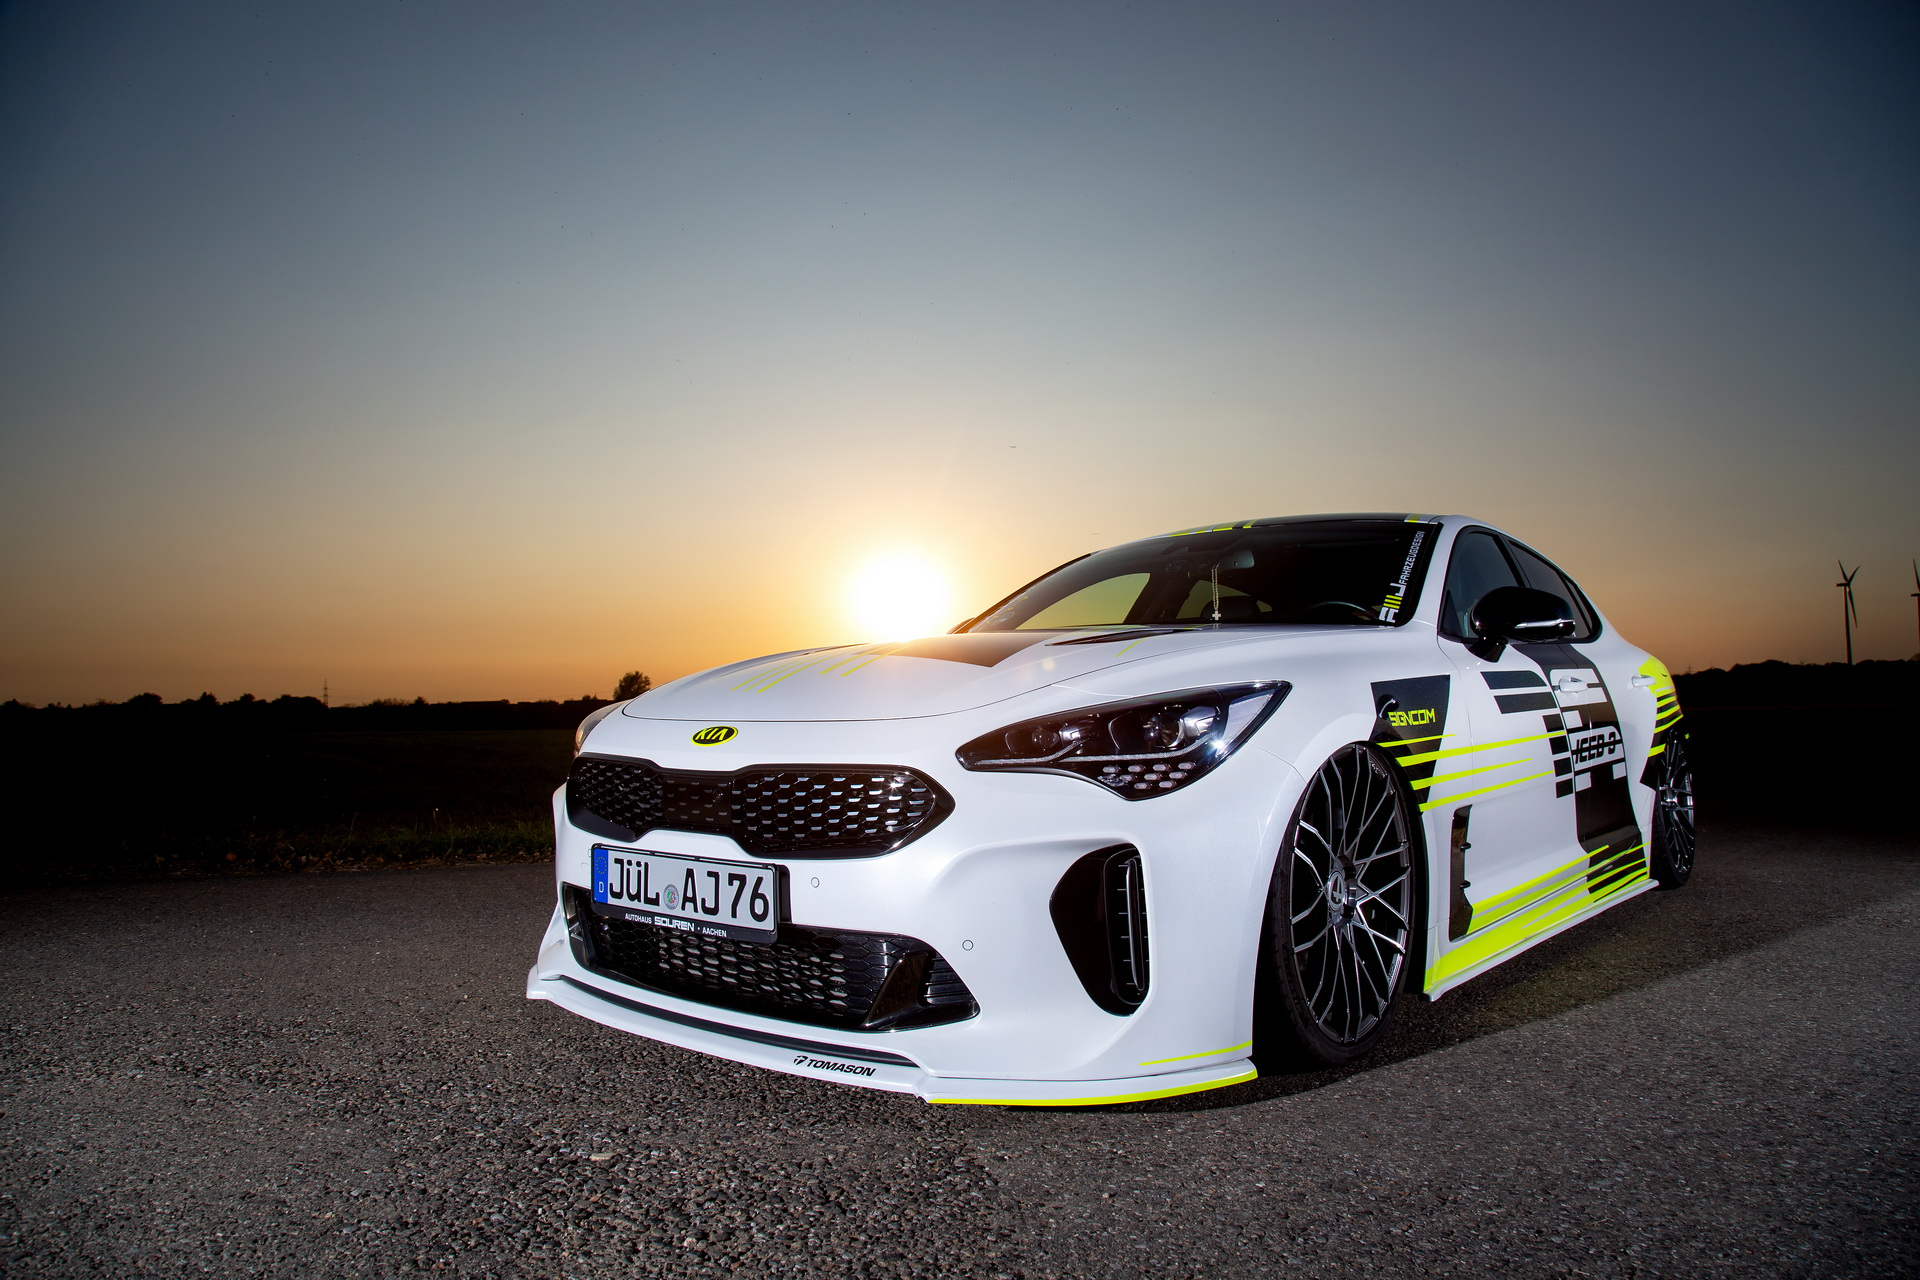 German tuner AMJ-Fahrzeugdesign somehow arrived at the conclusion that the latest Kia Stinger needs a major stylistic overhaul. This is how the magnificent StingAir came to be – a real eye candy, if little else.